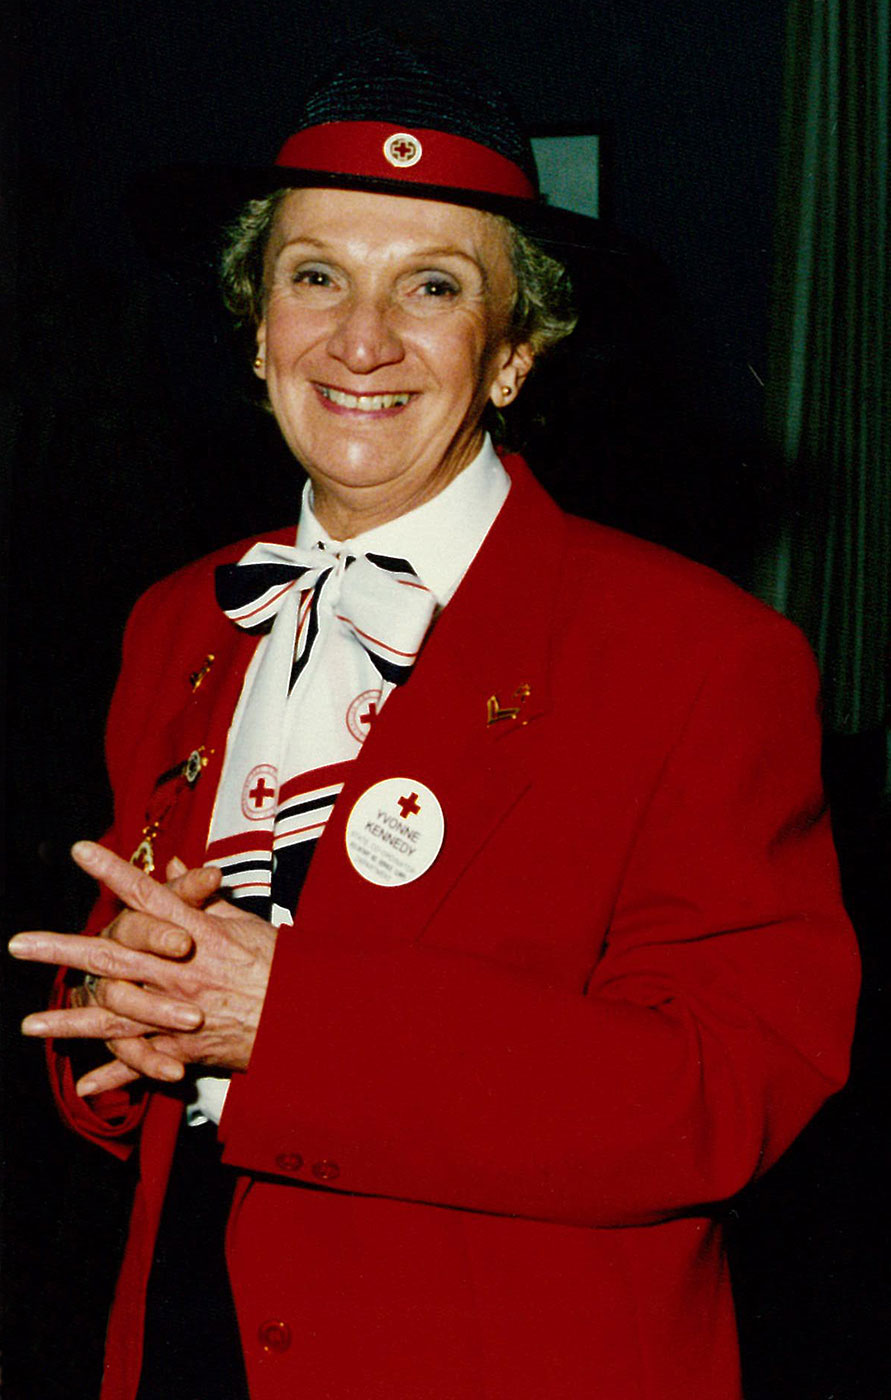 Portrait showing a woman wearing a red jacket and a black hat with red band and pin. The woman is smiling and wears several Red Cross badges and pins. - click to view larger image